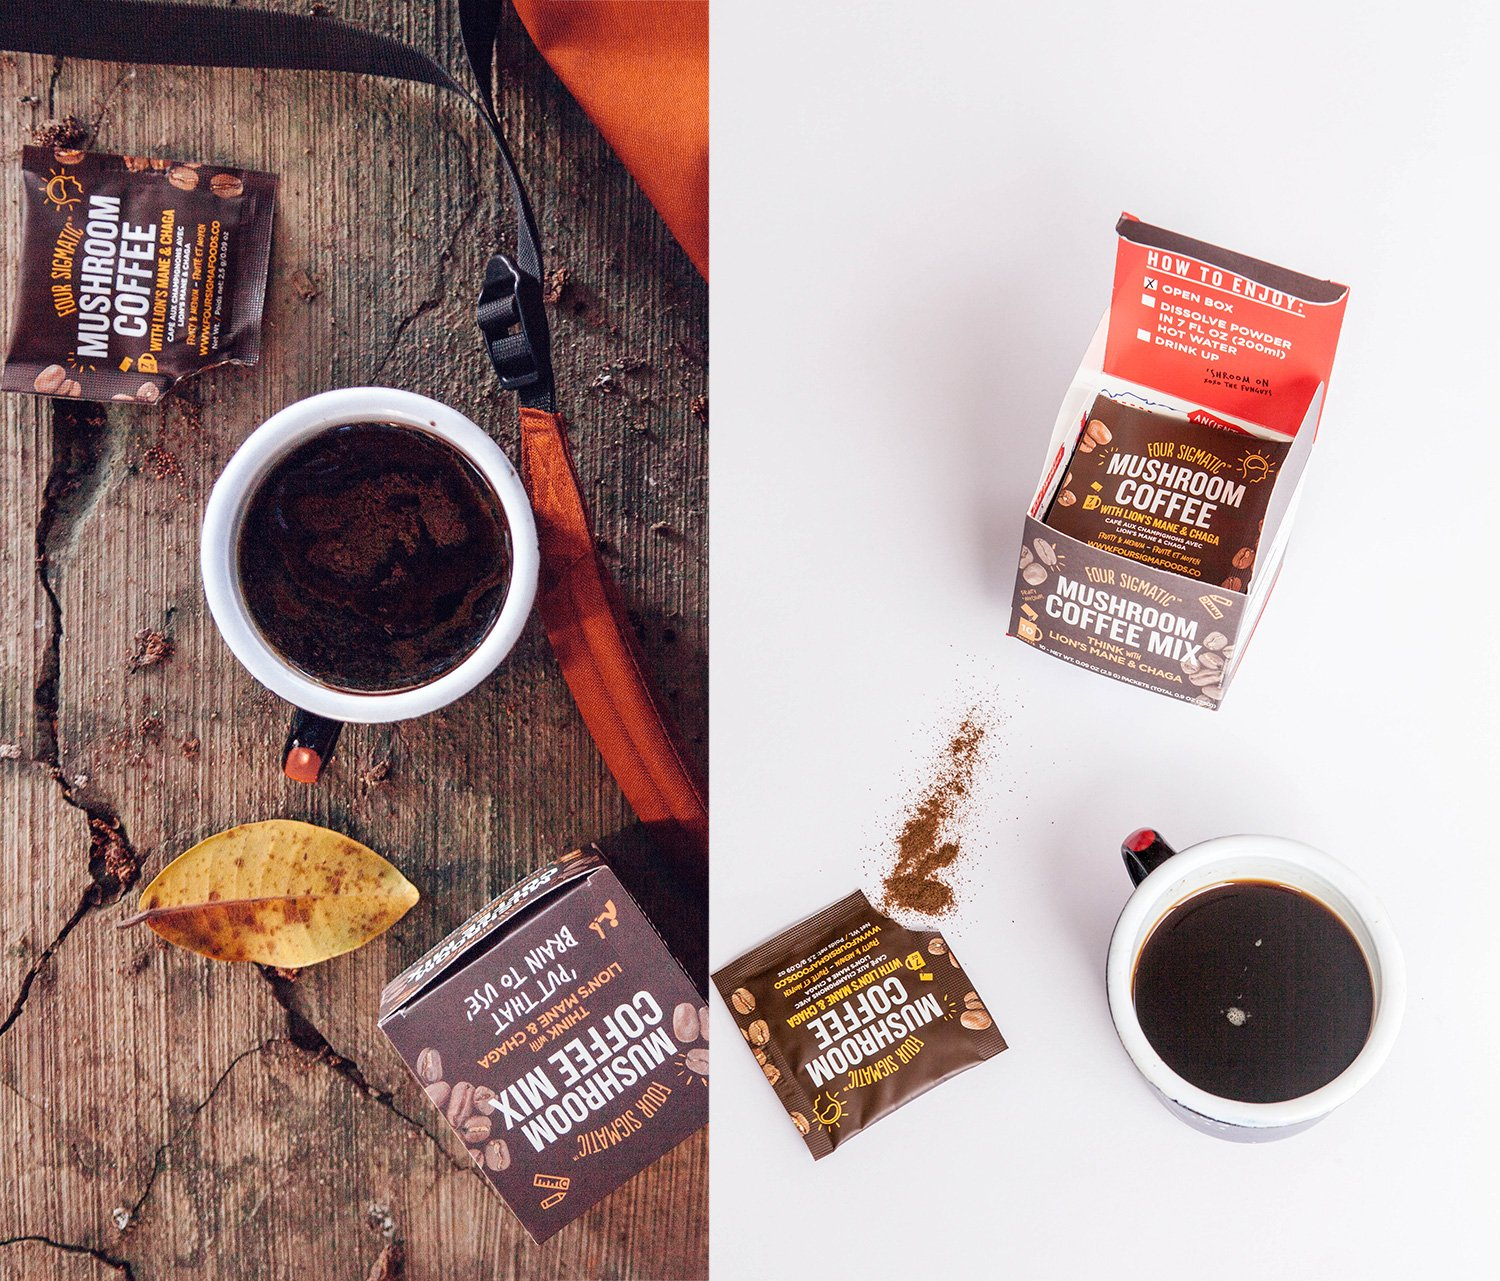 Amazon four sigmatic mushroom coffee with lions mane chaga amazon four sigmatic mushroom coffee with lions mane chaga for concentration focus vegan paleo 009 ounce 10 count amazon launchpad ccuart Image collections